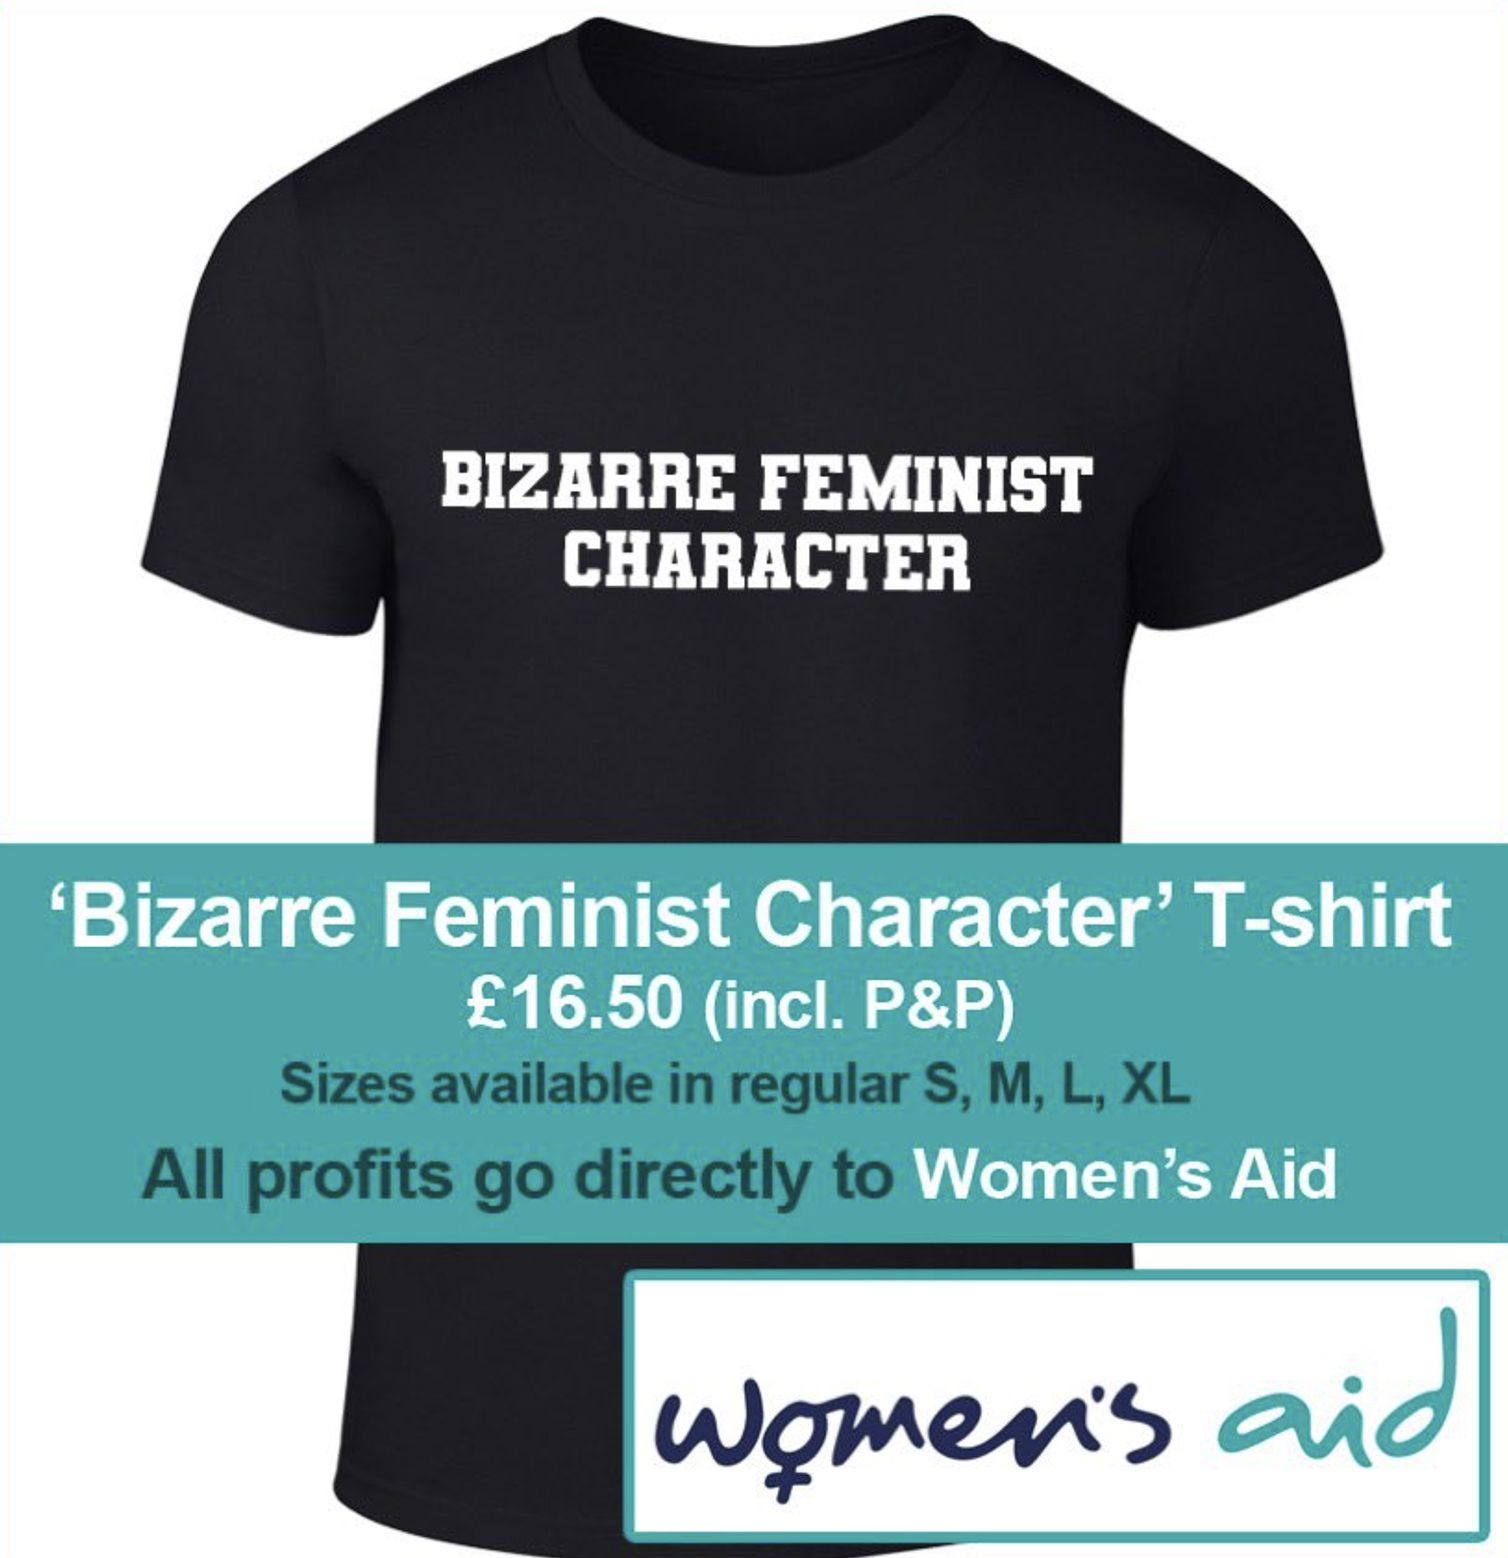 GETTING SHIRTY: The new T-Shirt for \'Bizarre Feminist Character\'